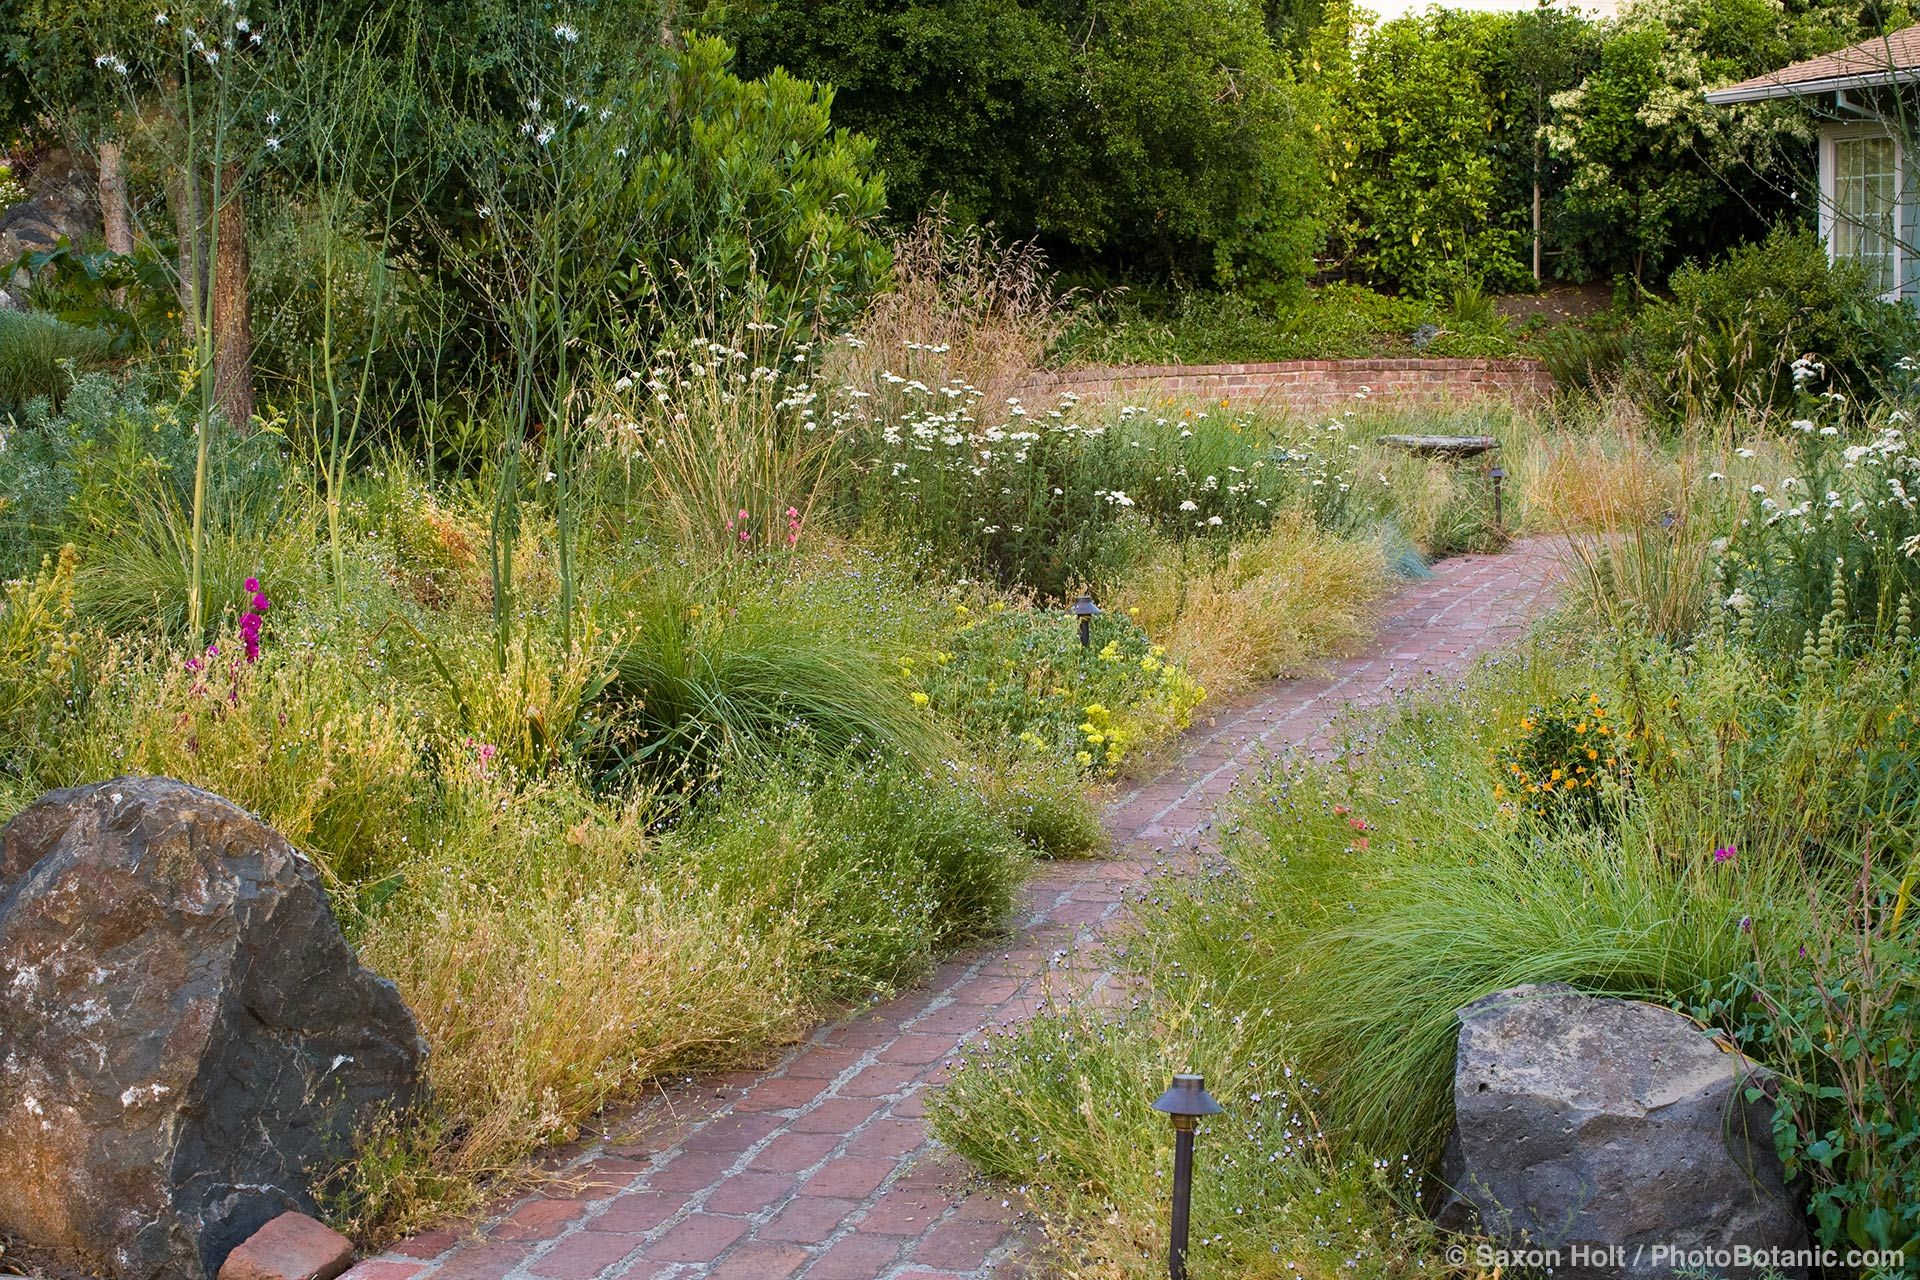 path through california native plant front yard meadow garden with native grasses and perennials